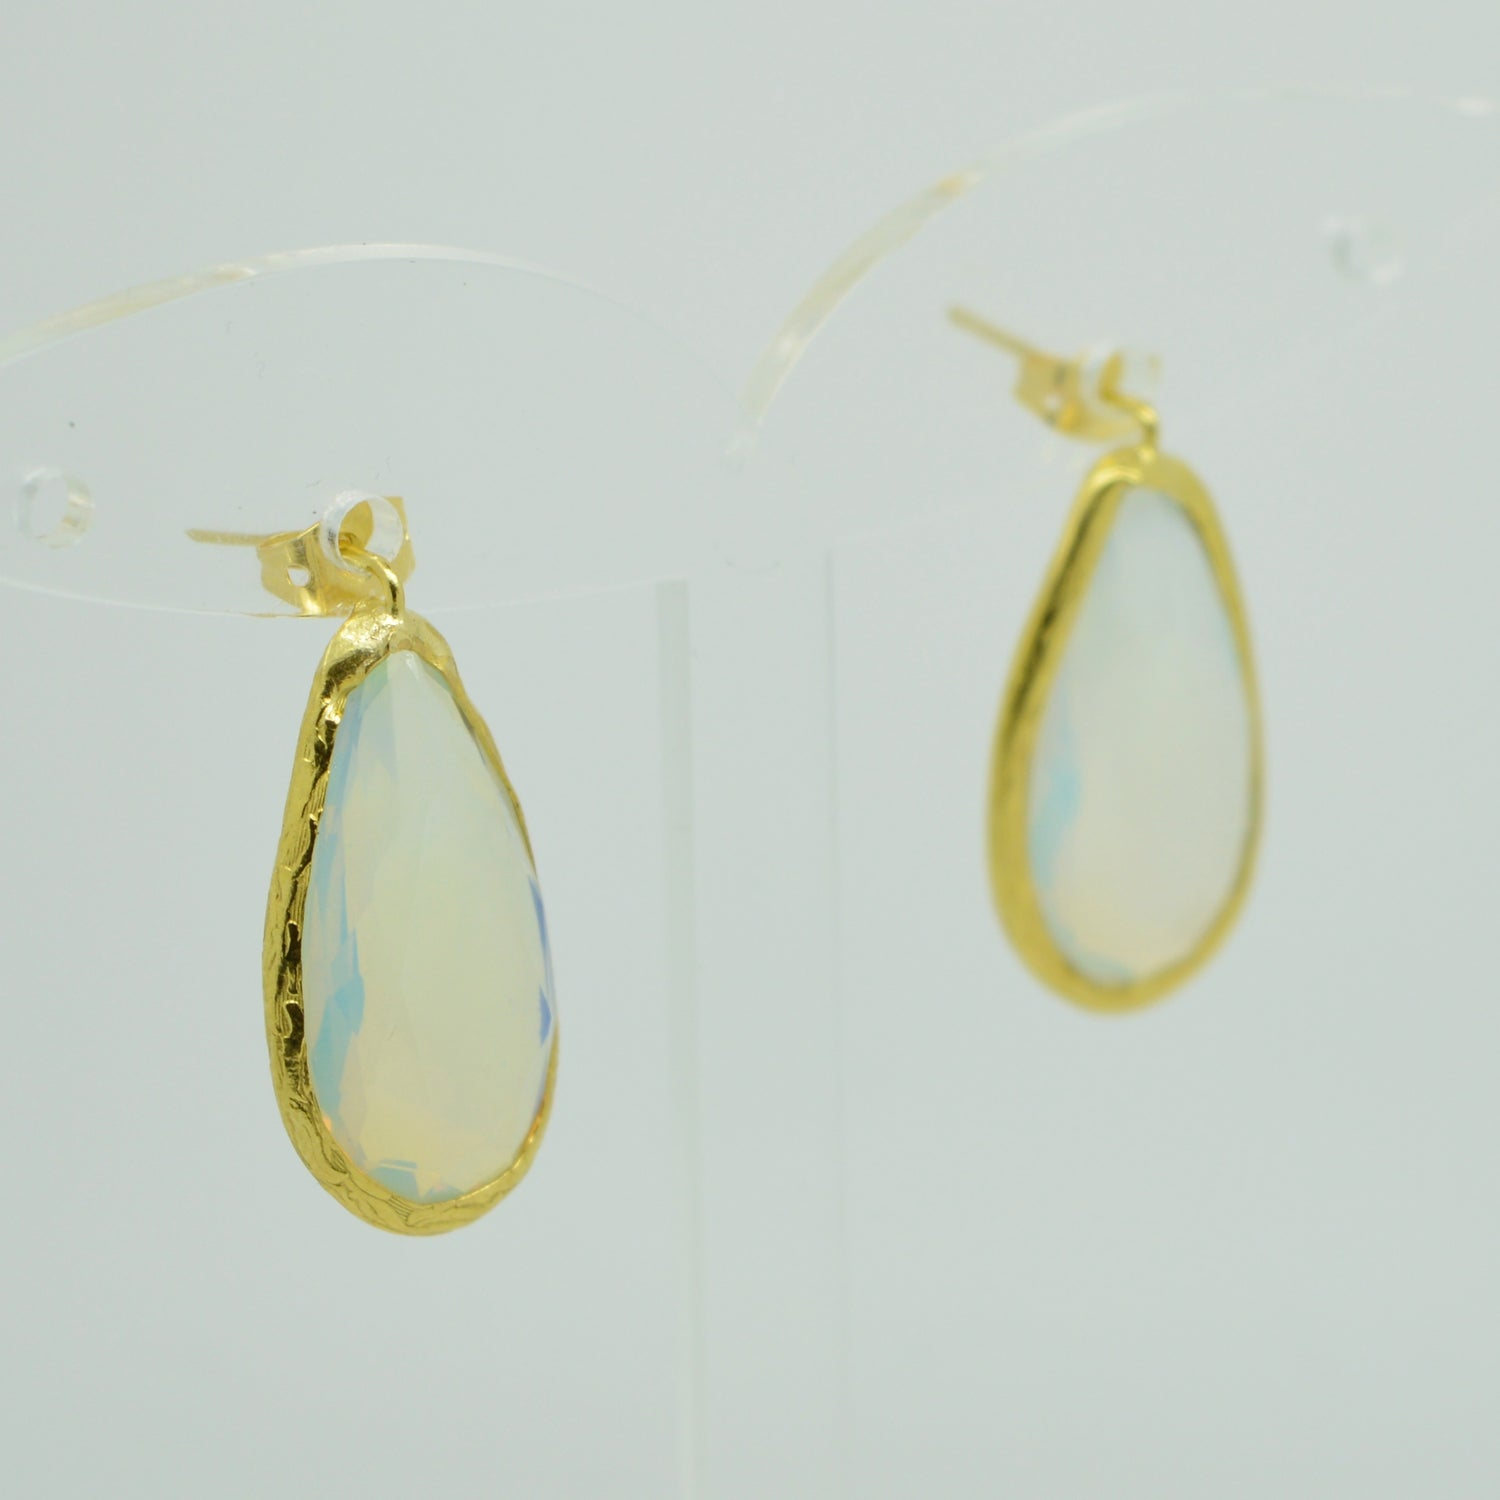 Aylas gold plated semi precious gem stone earrings teardrop white Moonstone - Ottoman Handmade Jewellery Hand Made Gold Plated